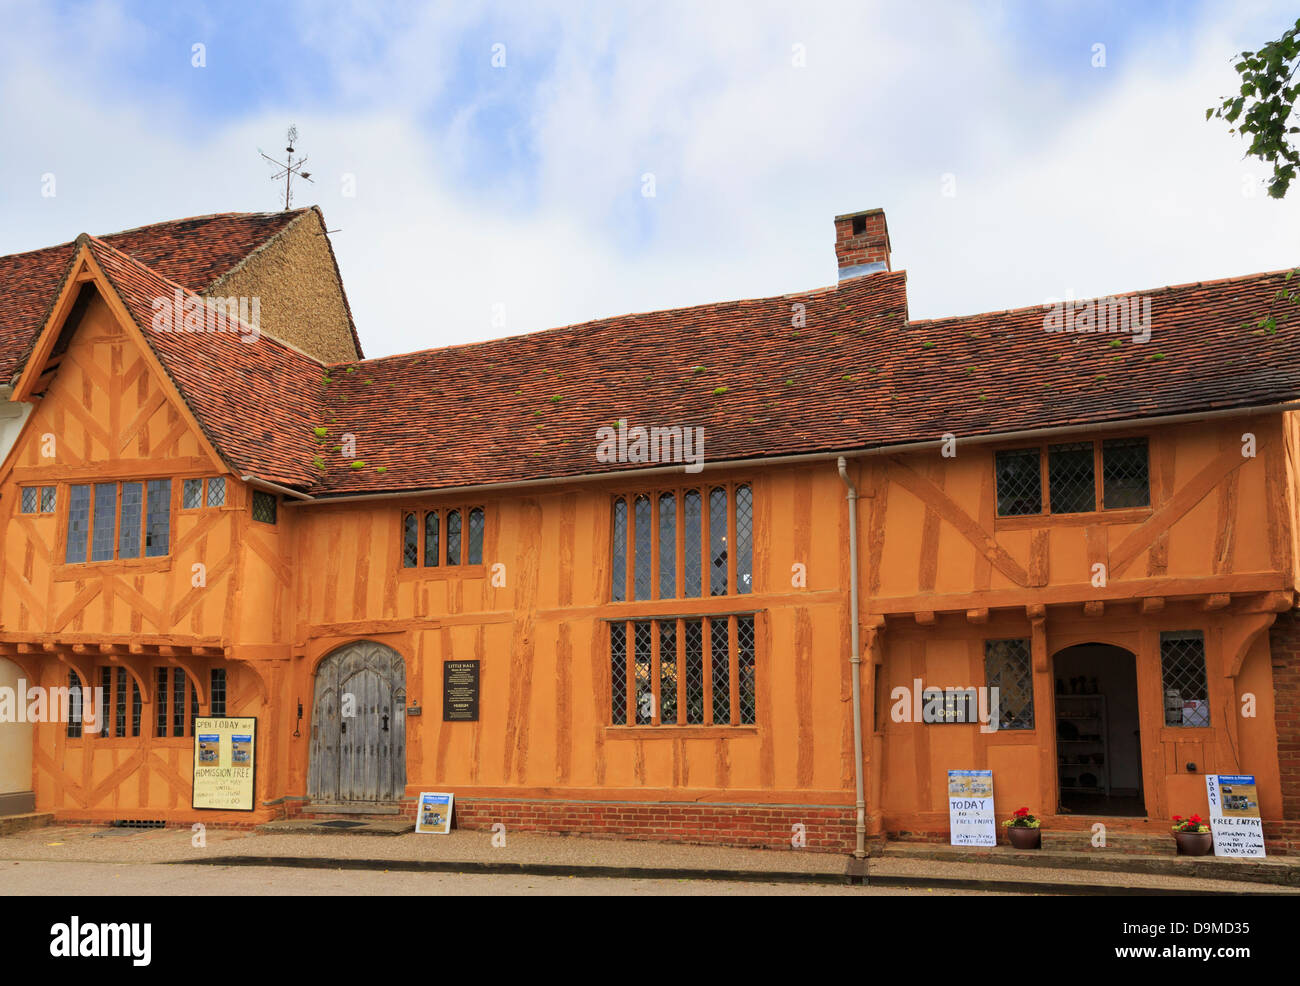 Little Hall museum in 14th century orange timbered building is one of oldest buildings in Lavenham Suffolk England Stock Photo